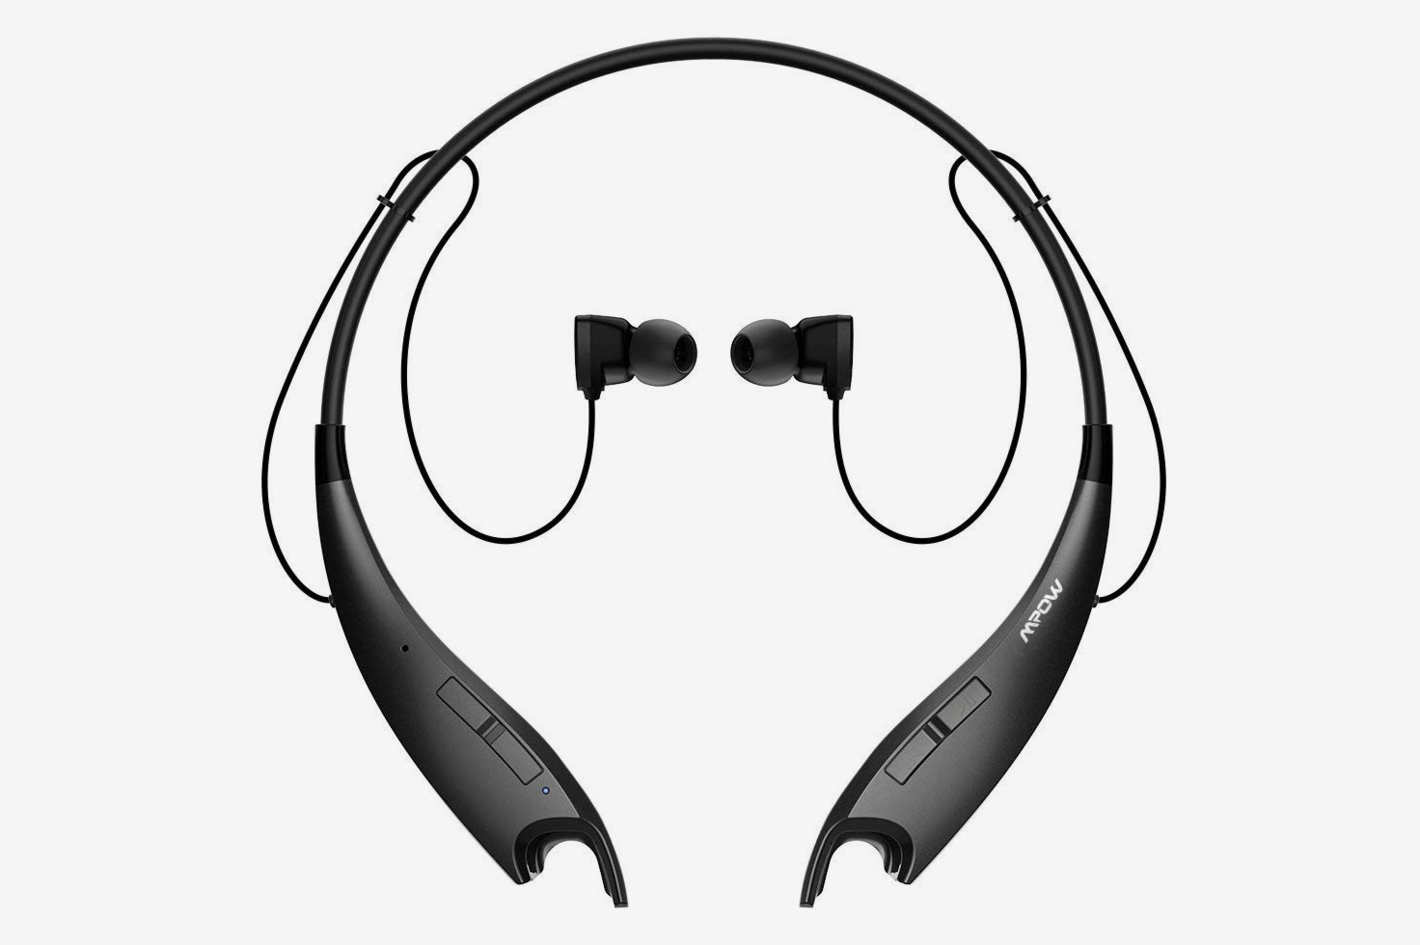 Wireless bluetooth headphones senso - wireless headphones mpow bluetooth